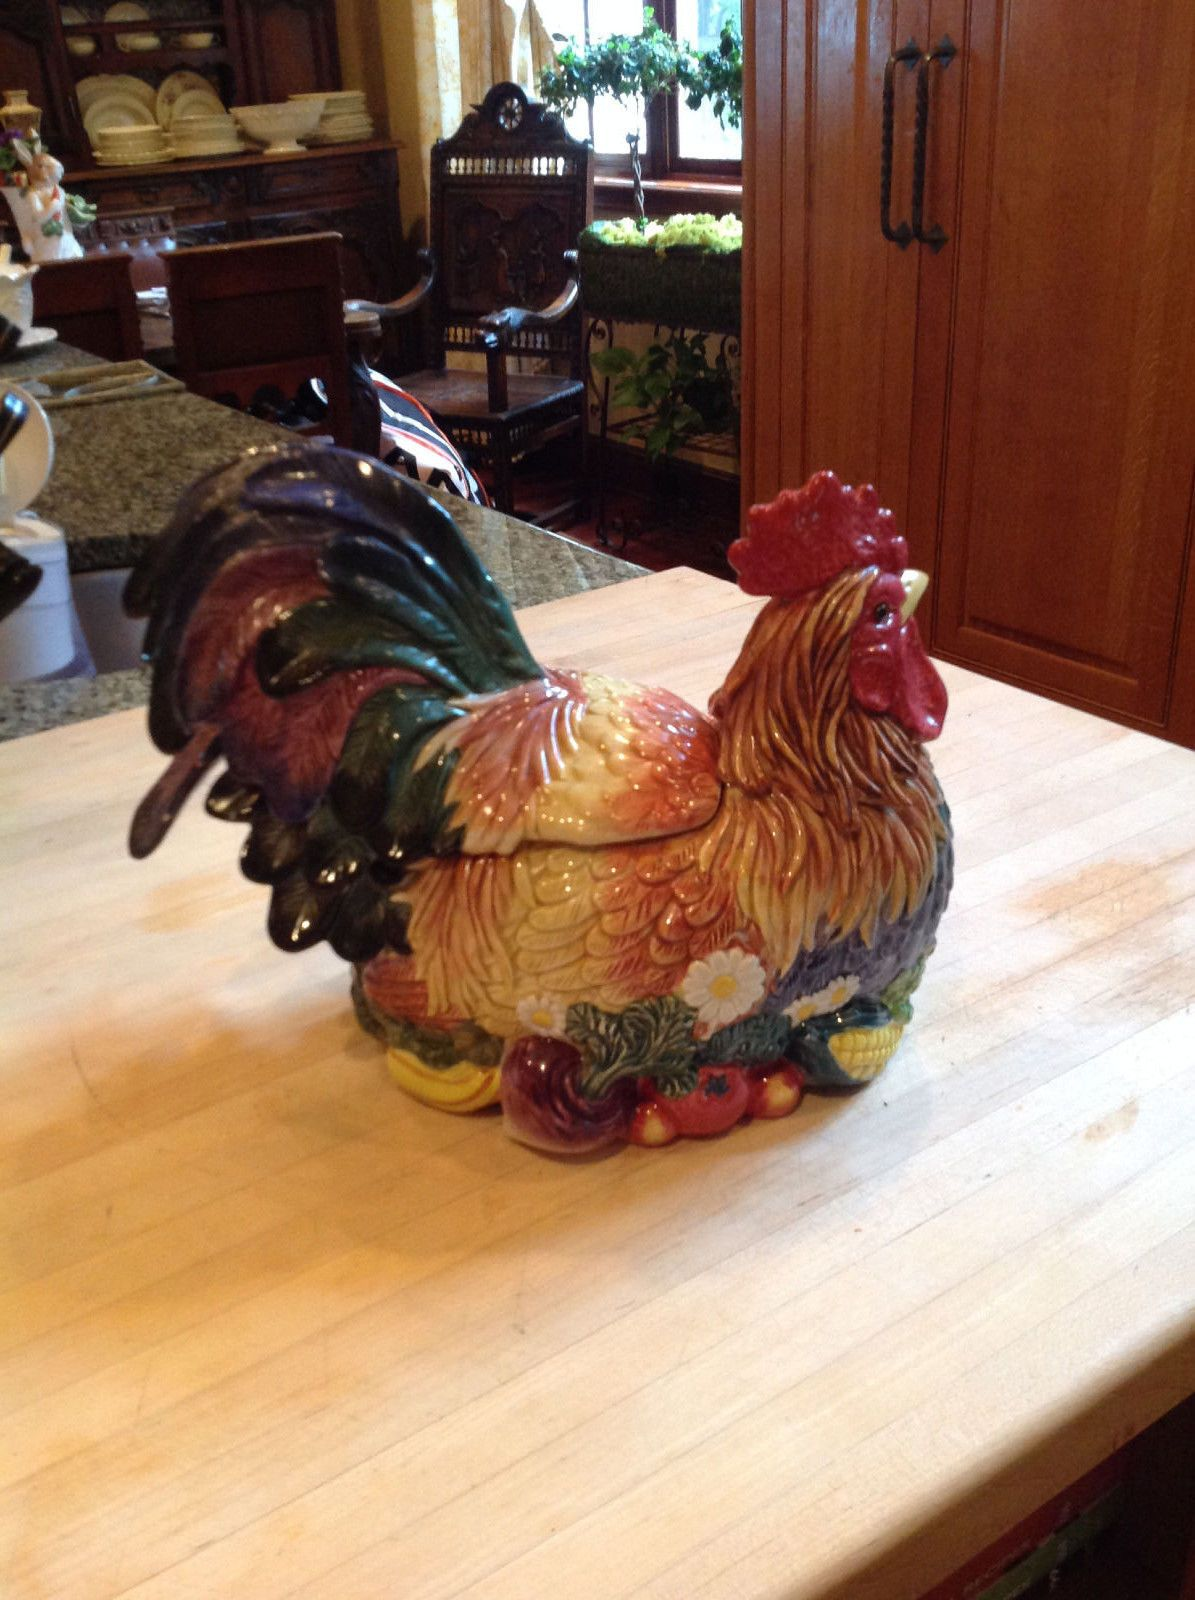 Certified international parisian fruit canister by susan winget set - Fitz And Floyd Rooster Soup Tureen With Ladle